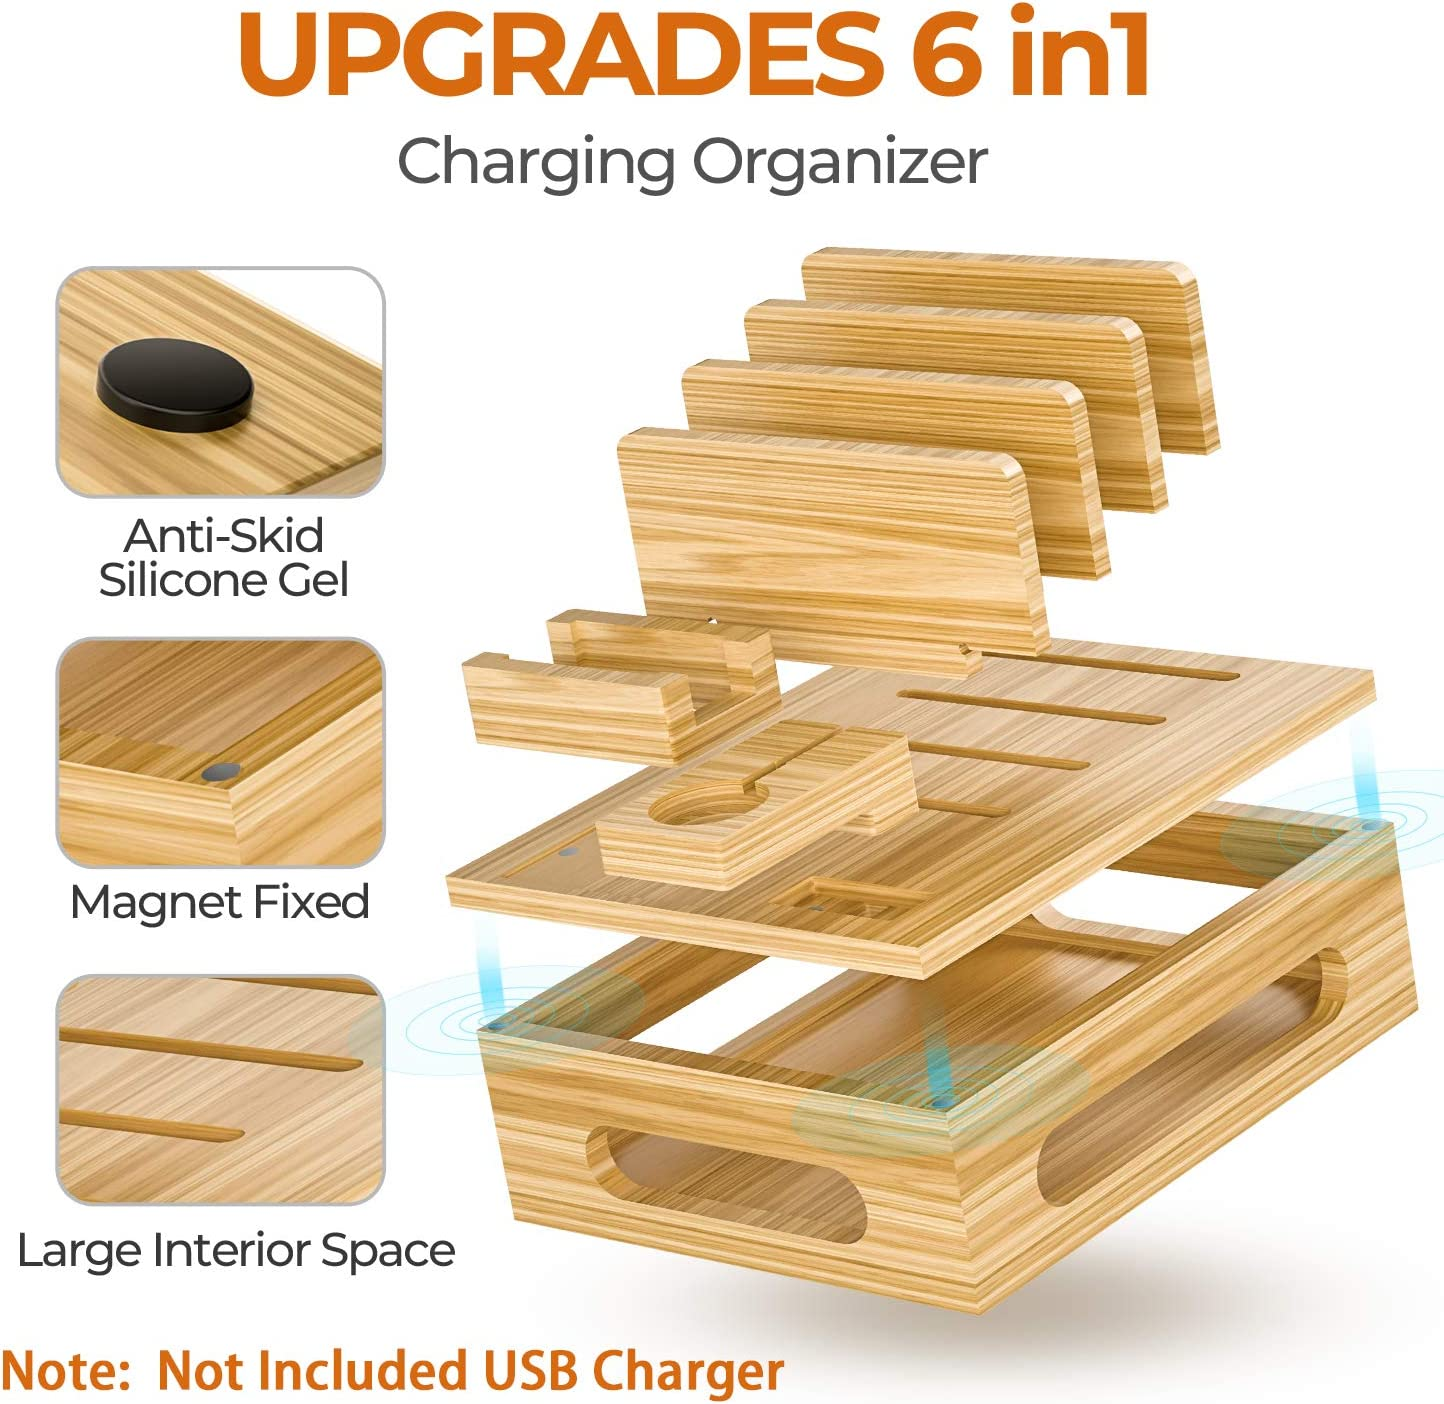 Alltripal Charging Station for Multiple Devices Bamboo Charging Organizer for USB Charger Docking Station with 5 USB Cables Note No Power Supply